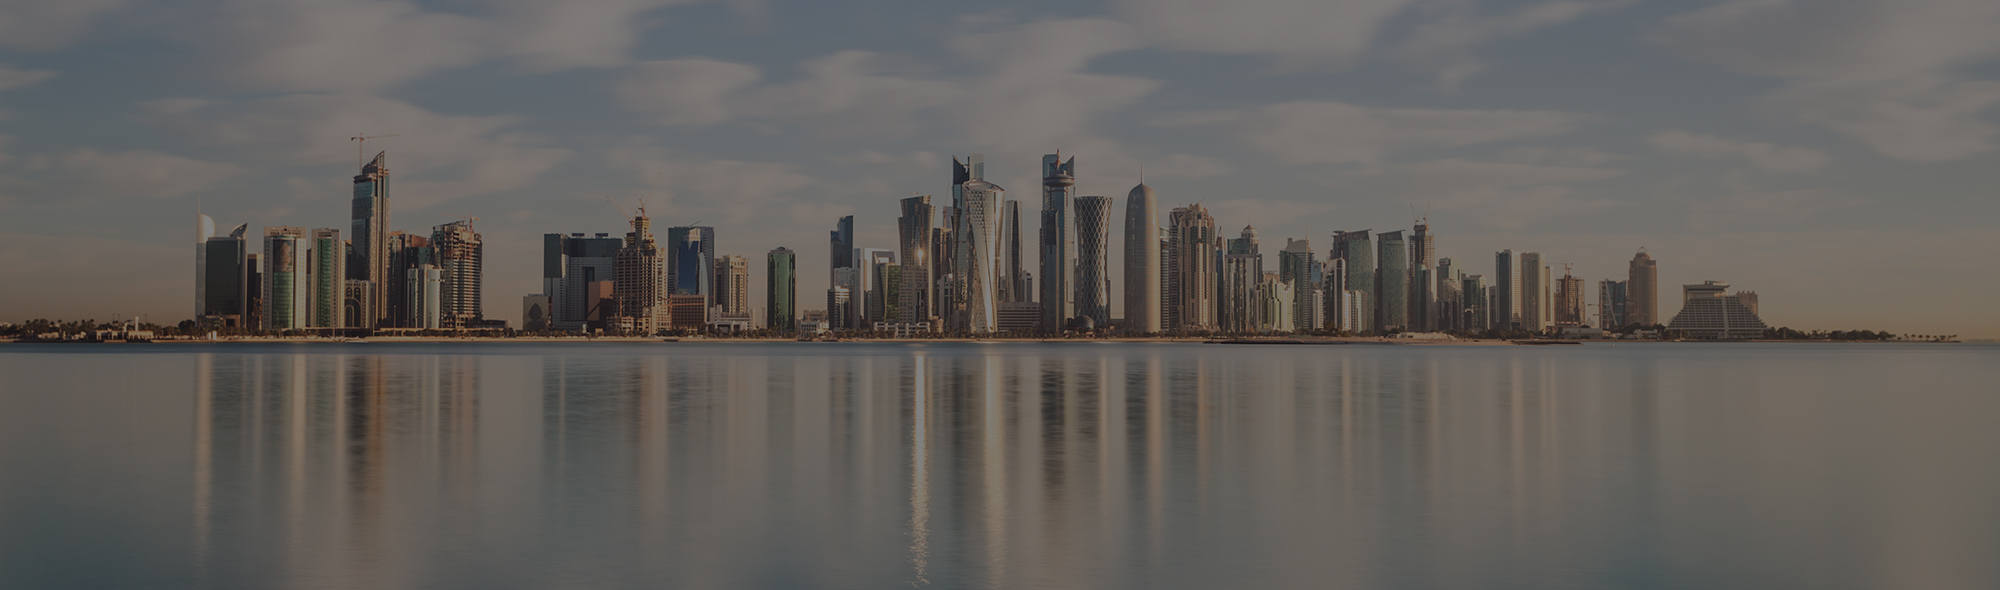 View of city skyline along coastal waterfront